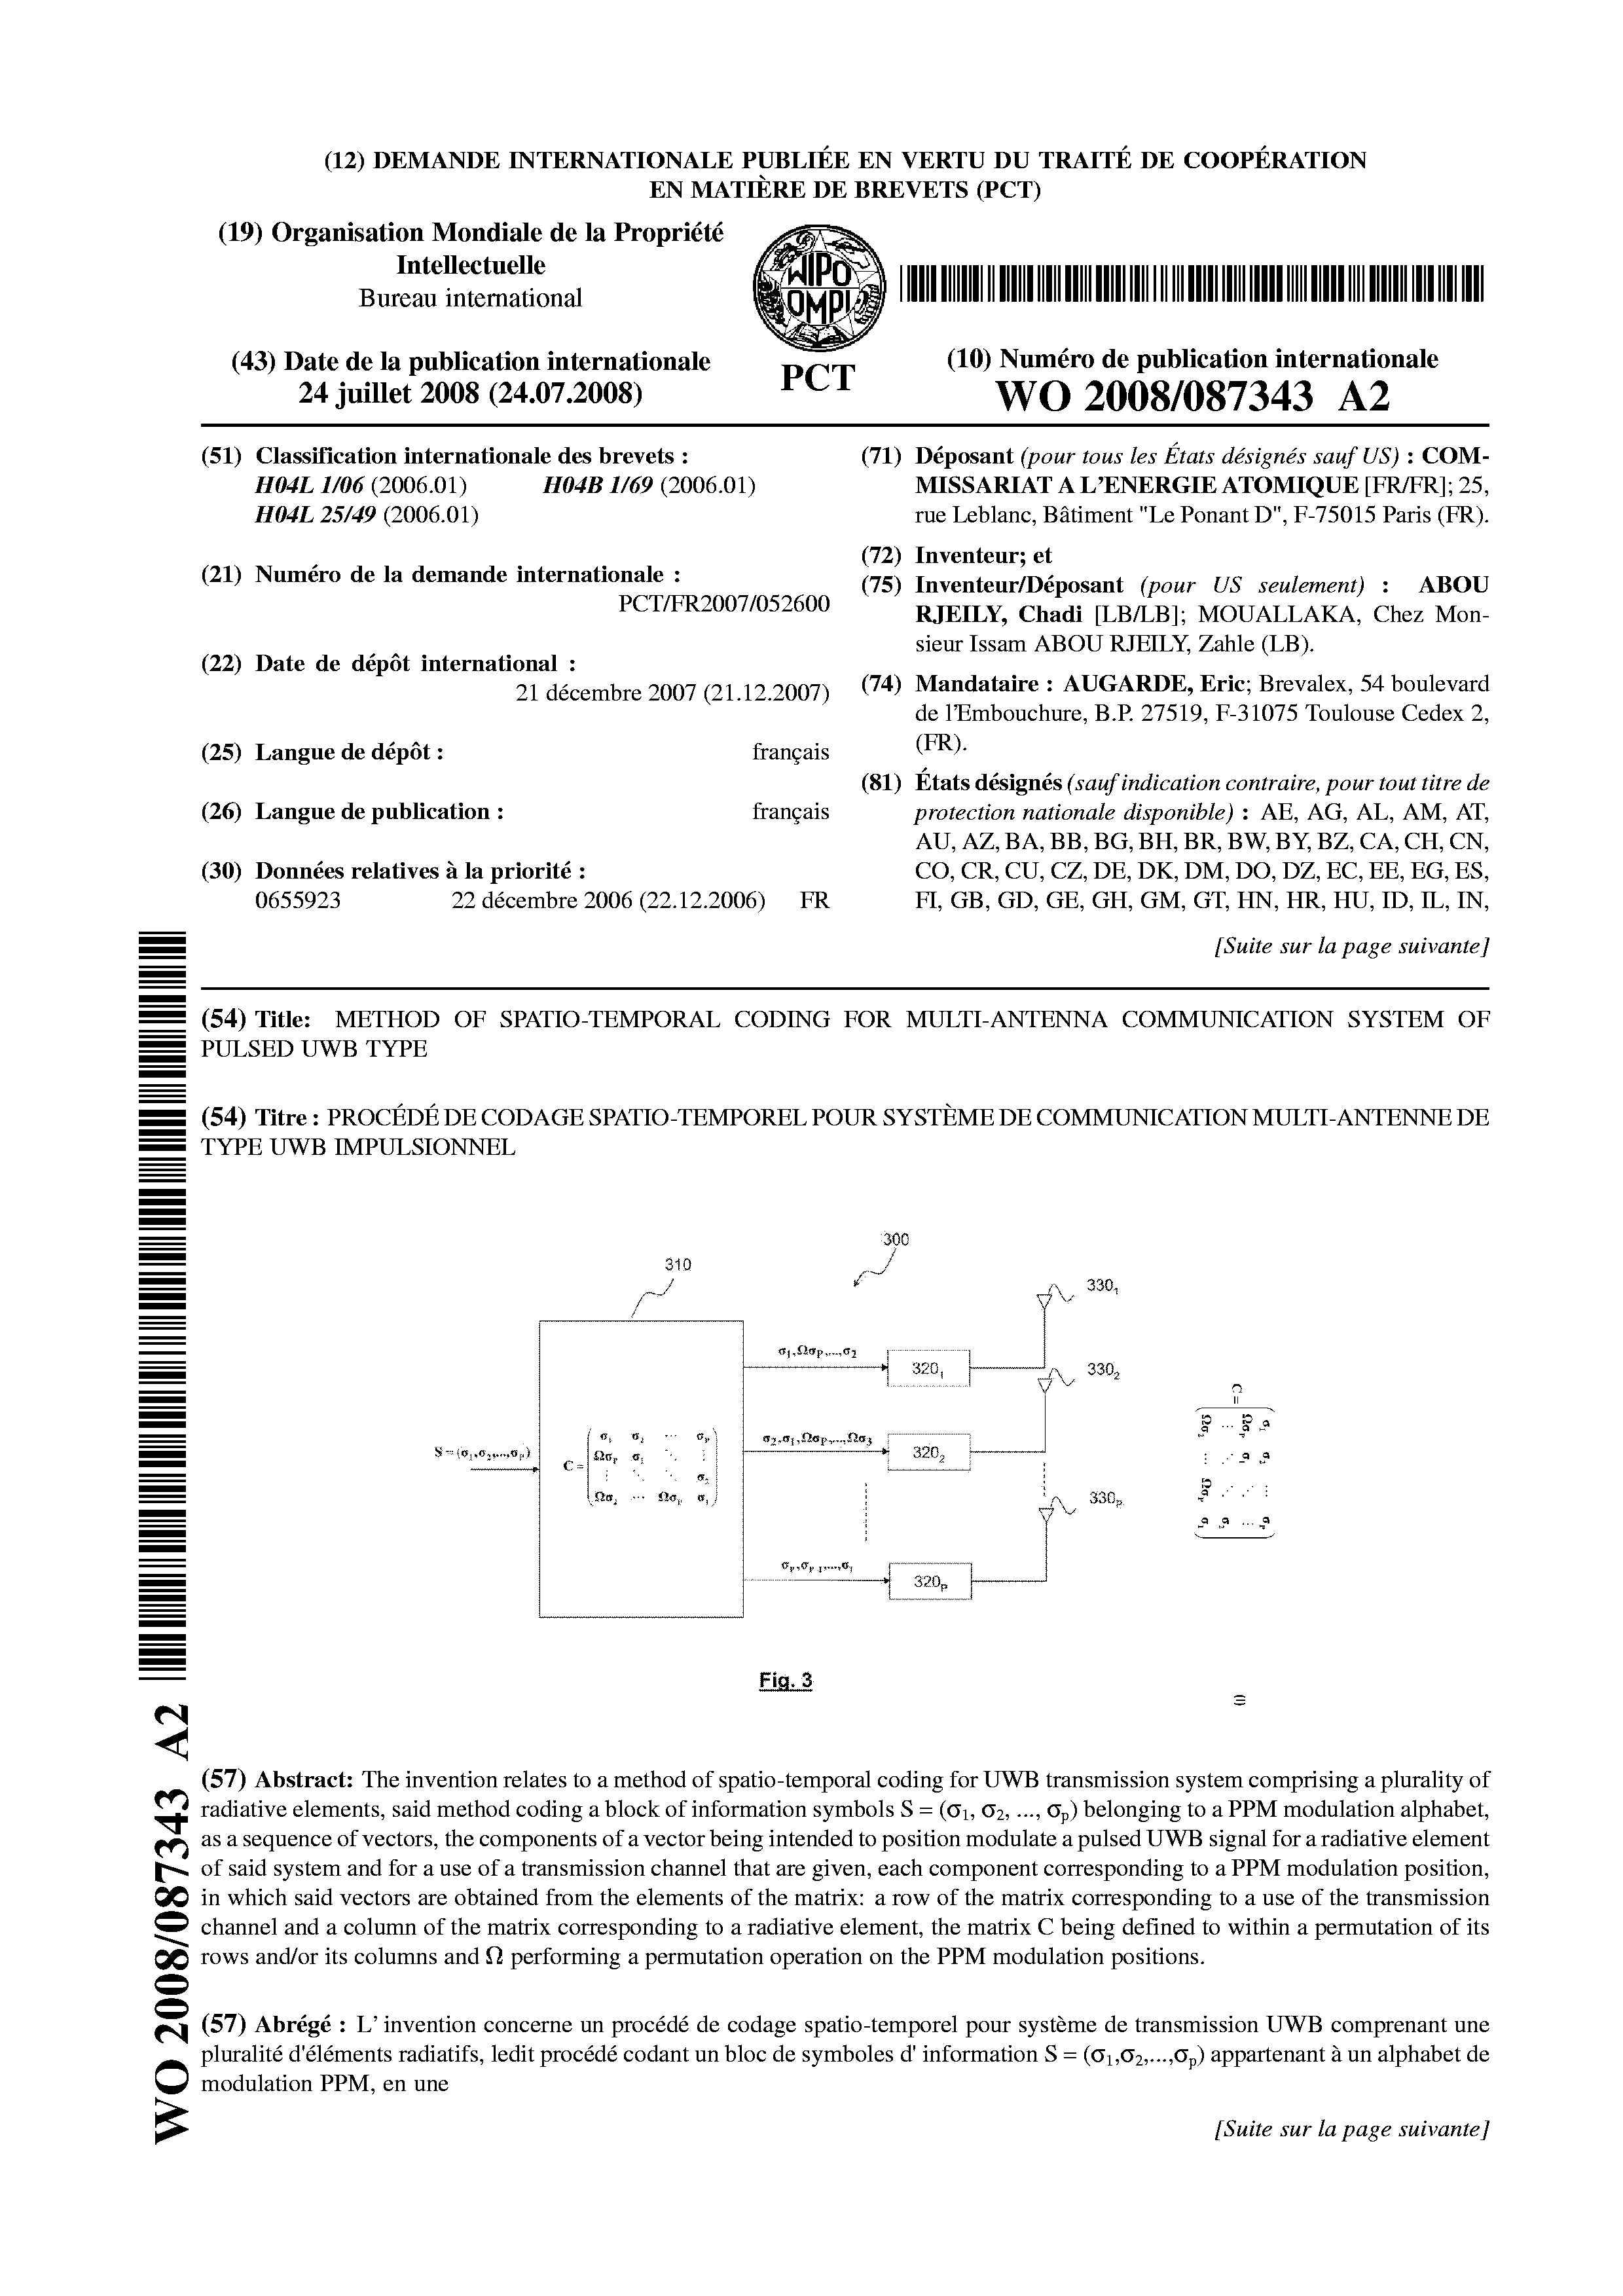 WO 2008/087343 A2 - Method Of Spatio-temporal Coding For